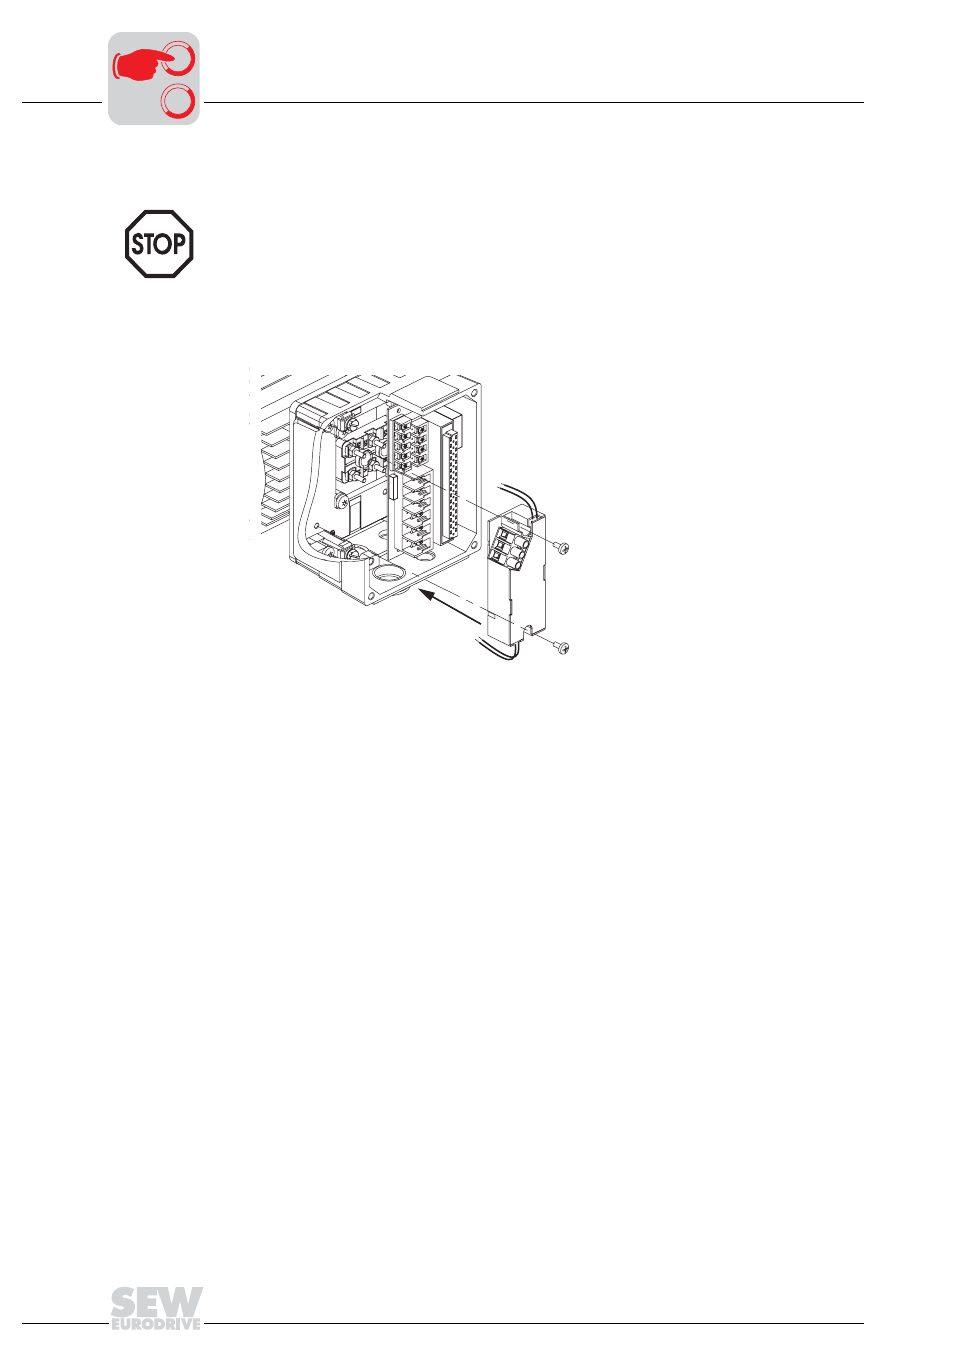 Coil Wiring Diagram For Brake Rectifier Books Of 1992 Toyota Camry Electrical Guide Handbook Metalfab Sew Eurodrive Movimot Mm C User Manual Page 76 168 Rh Manualsdir Com